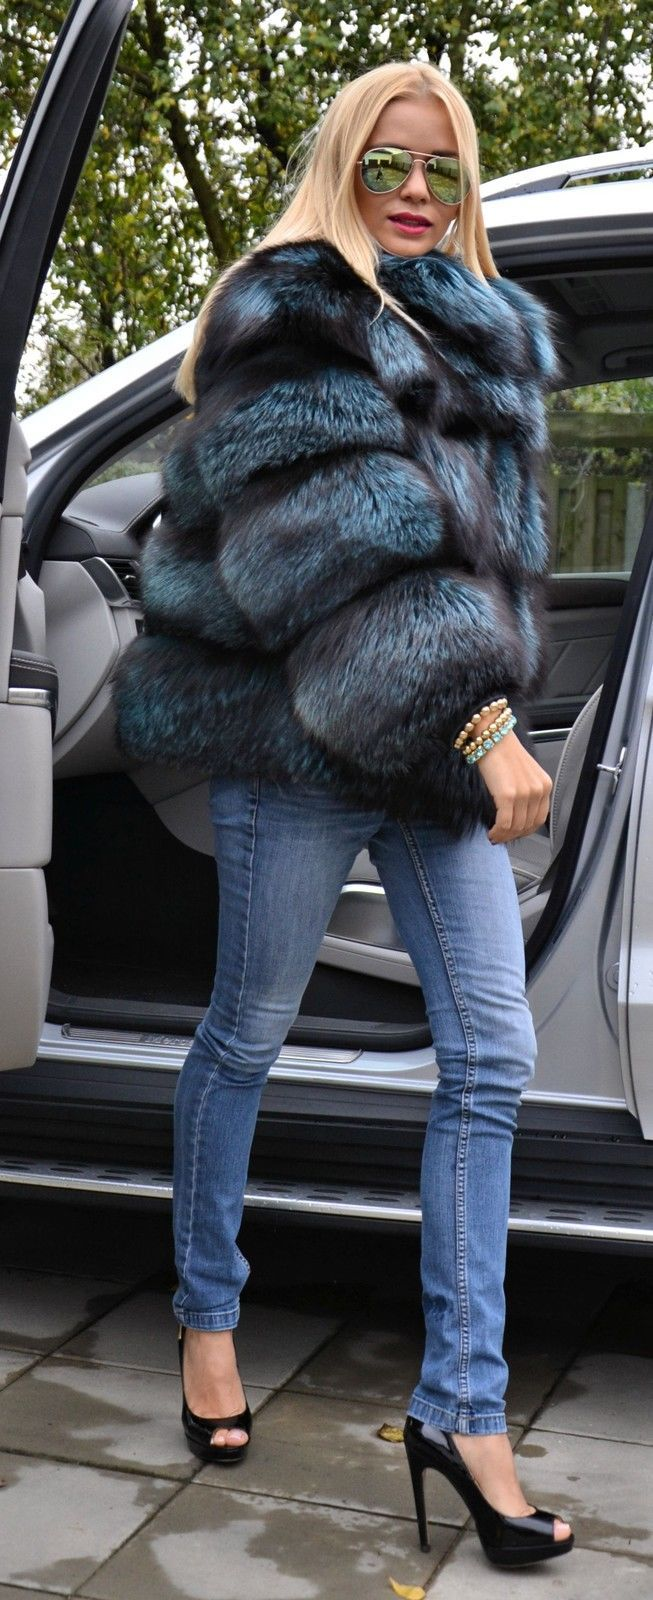 Ocean Blue Royal Saga FOX Silver FUR Coat Jacket Like Sable Mink Chinchilla Lynx | eBay